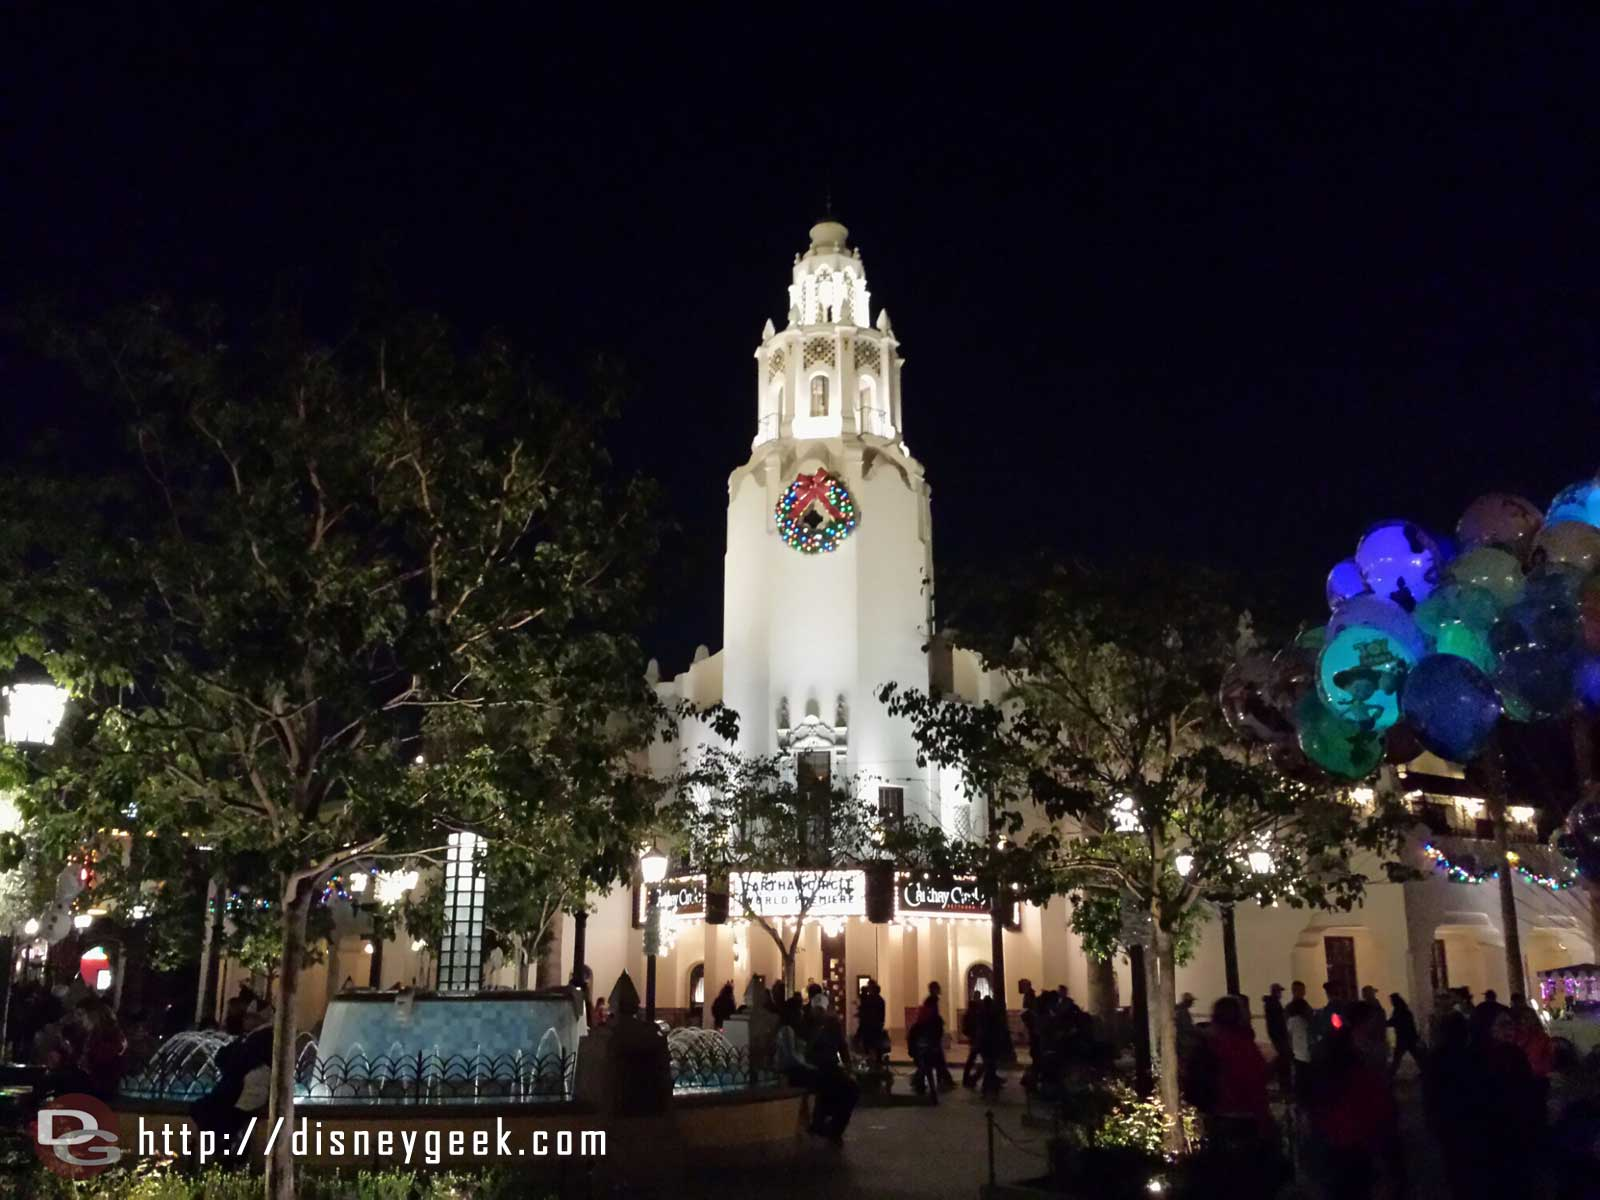 The Carthay Circle Restaurant #BuenaVistaStreet